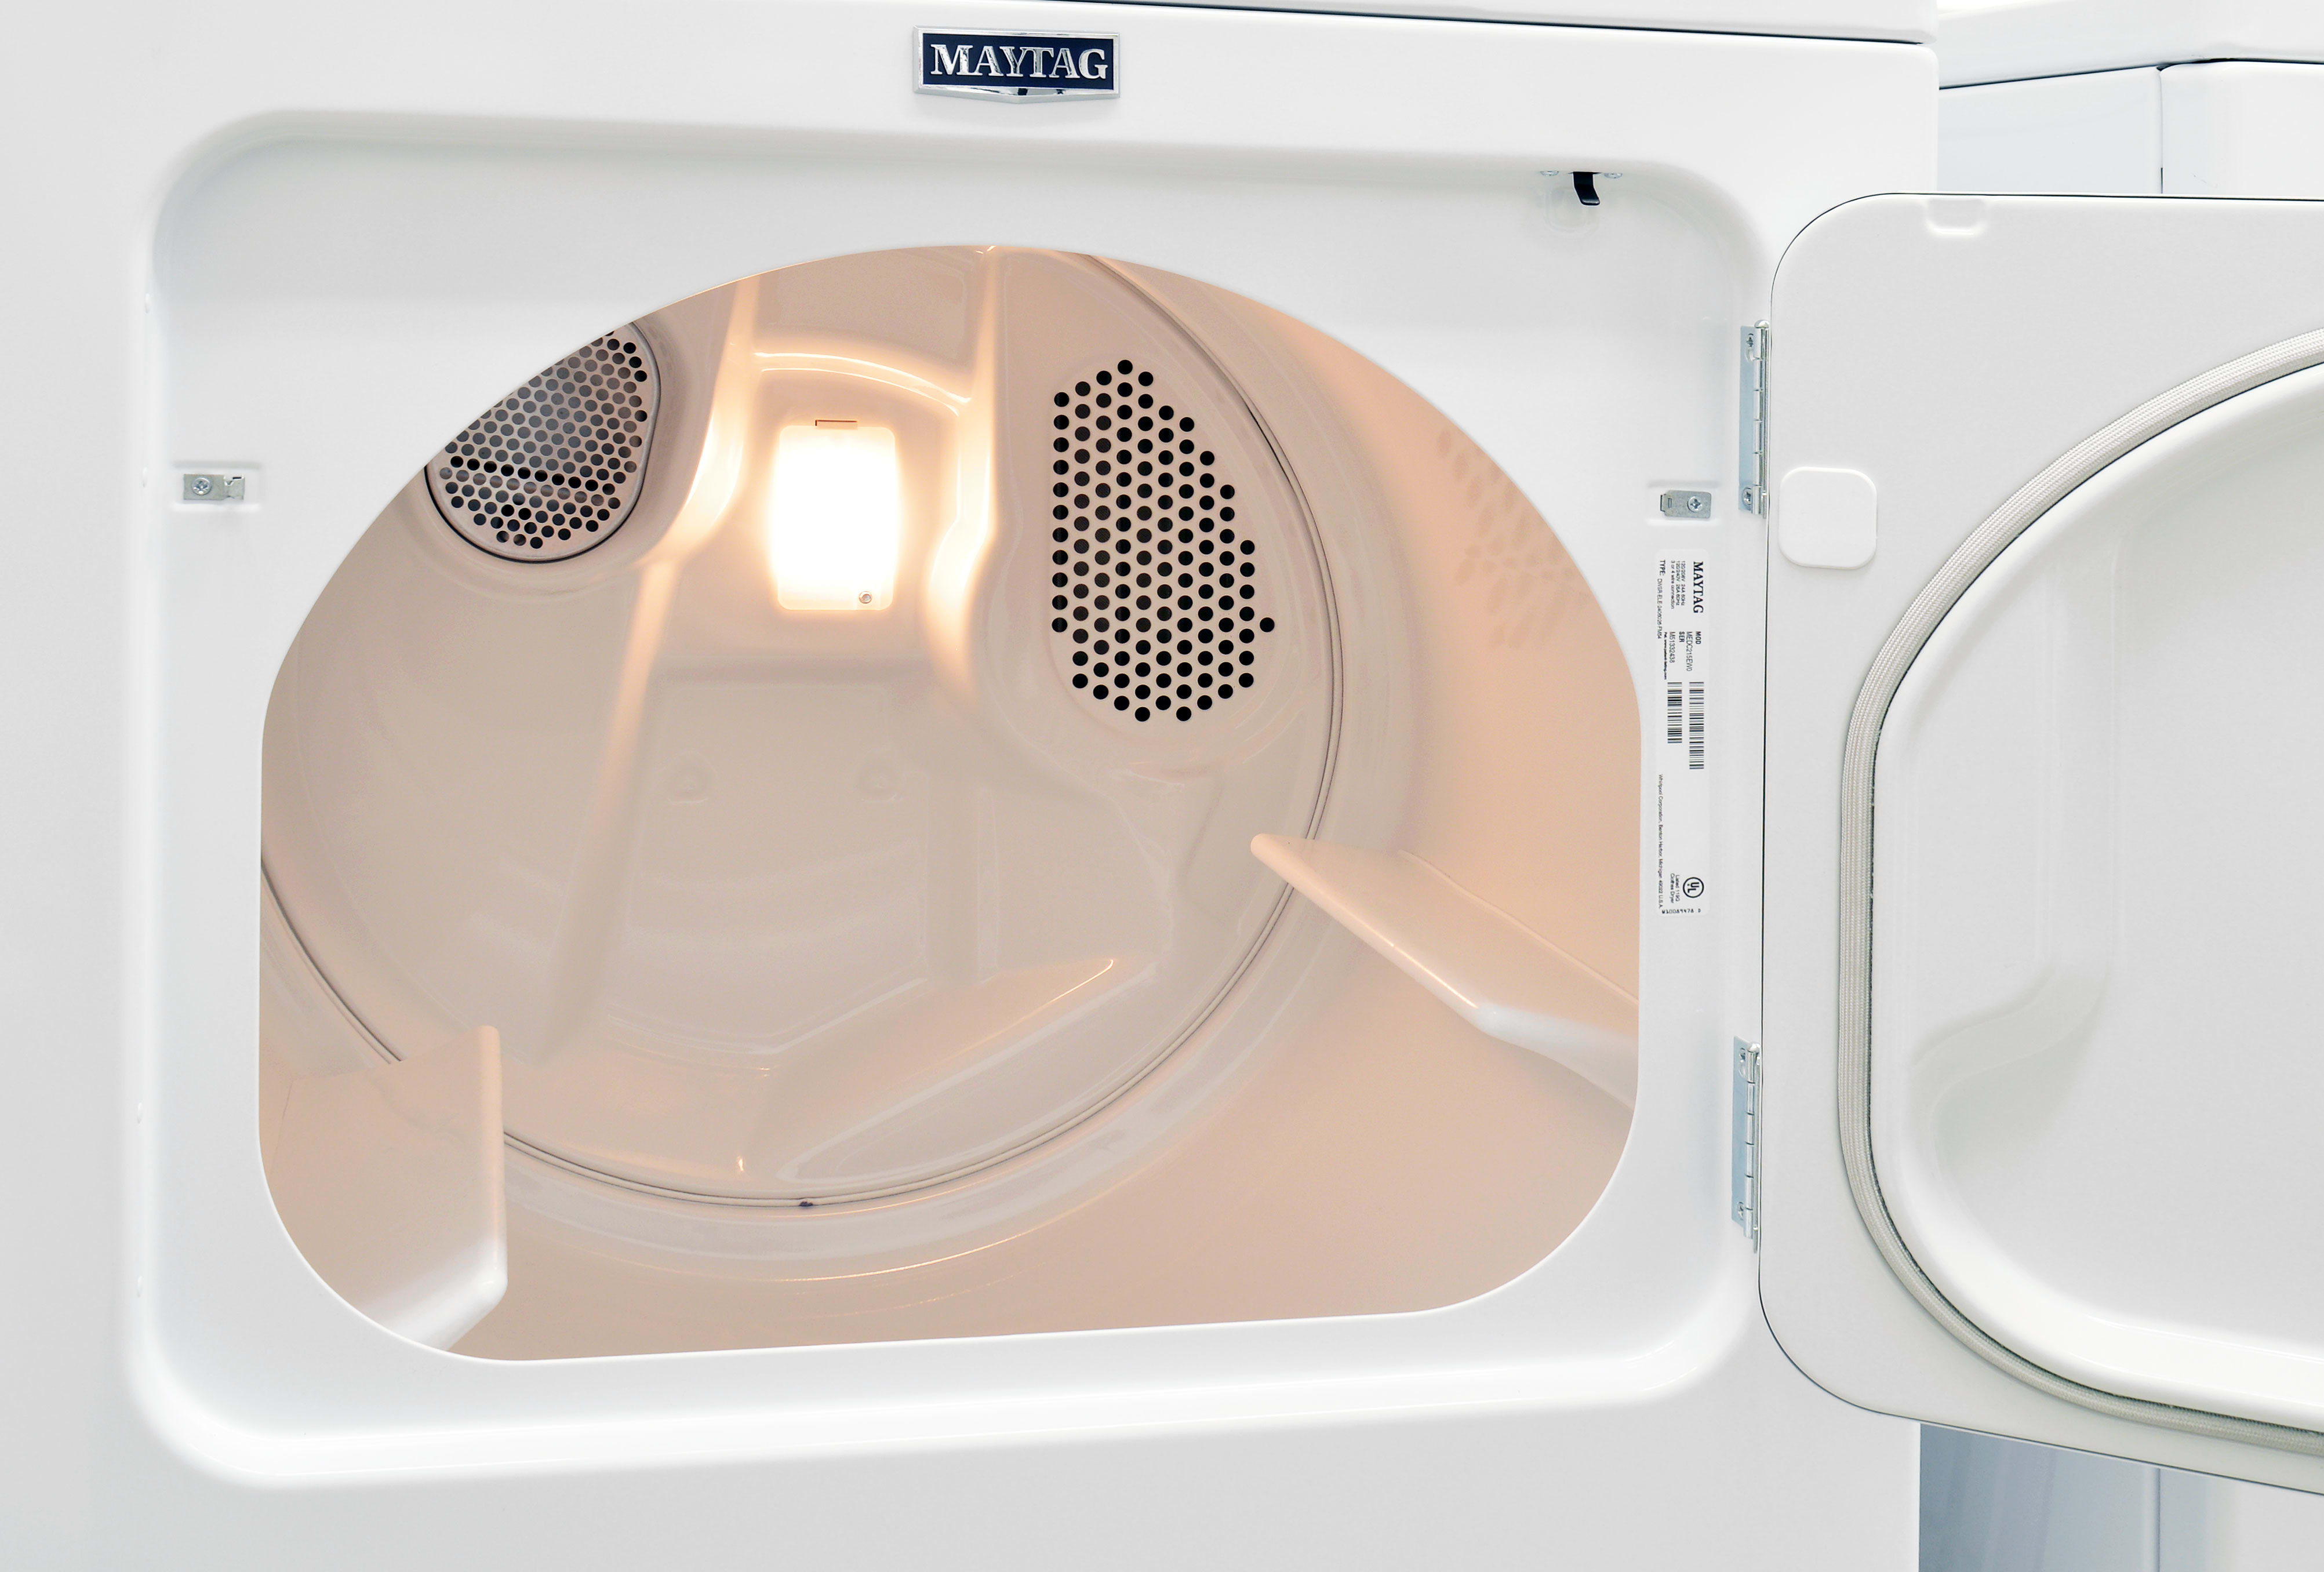 The Maytag Centennial MEDC215EW sports a 7.0-cu.-ft. white interior drum.